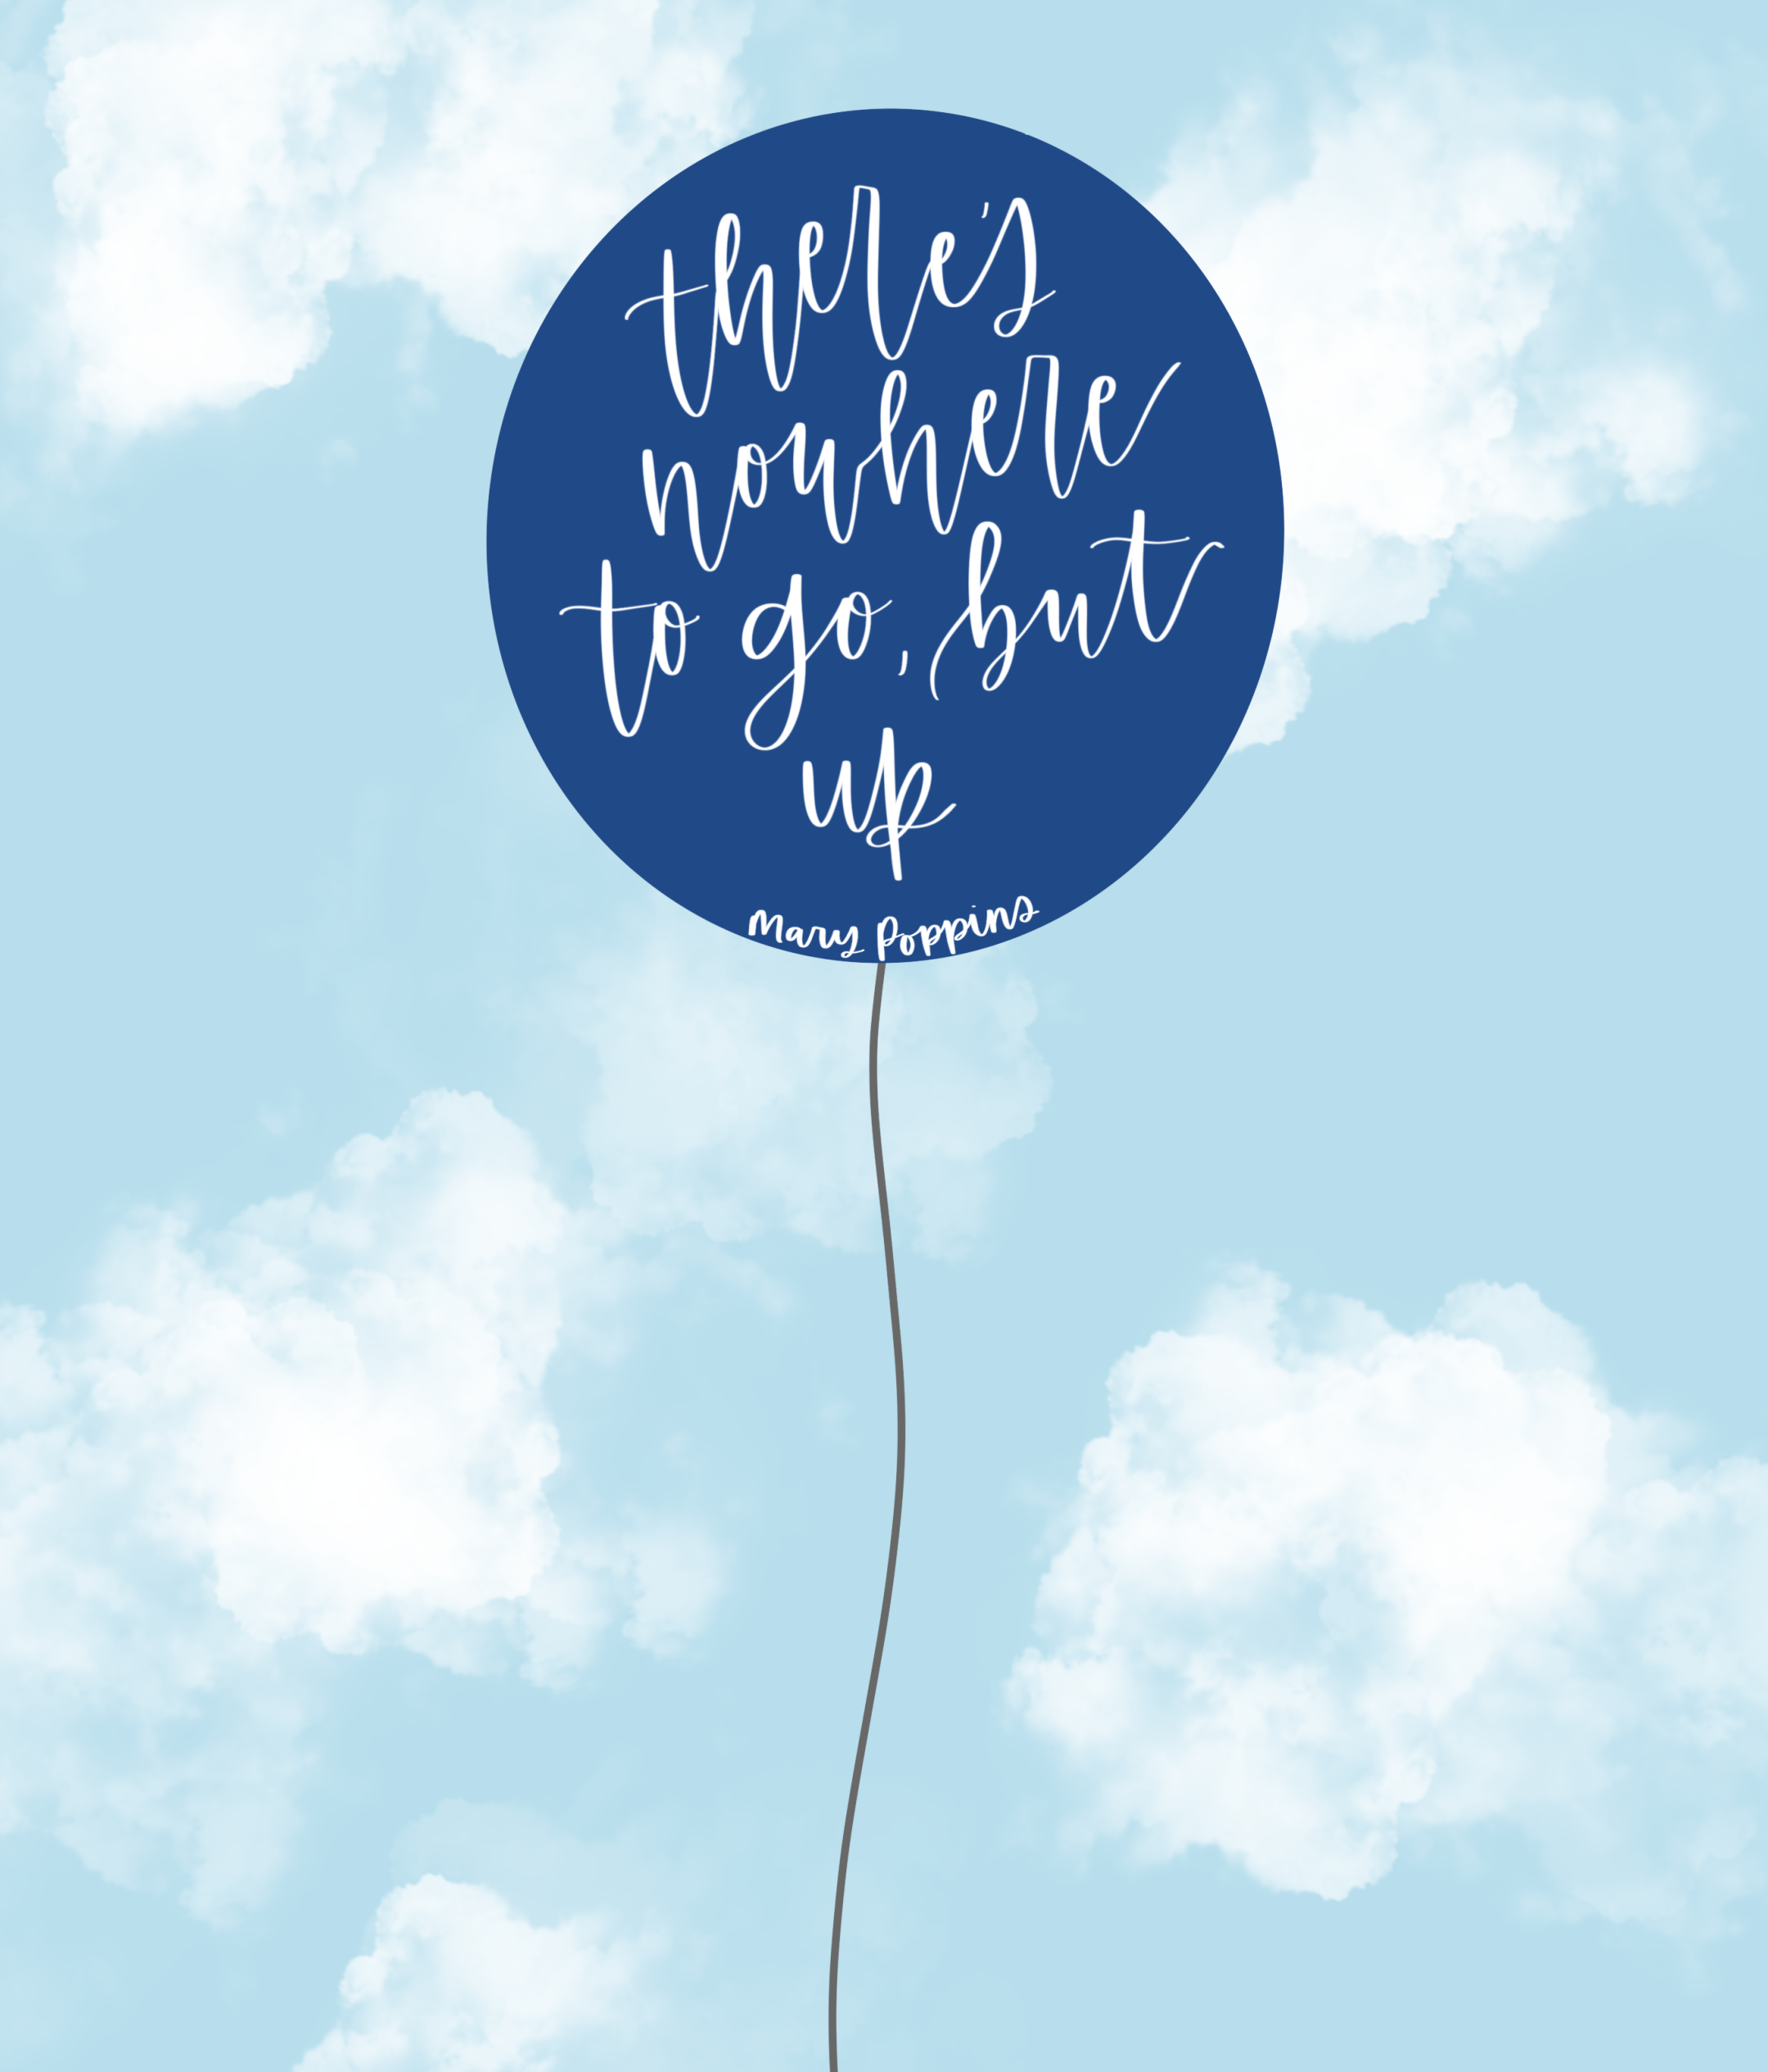 15 Quotes from Mary Poppins Returns to Brighten Your Day • TWF is part of Mary poppins quotes - Discover some of the sweetest quotes from Mary Poppins Returns! With handwritten calligraphy included, you'll think it's practically perfect in every way